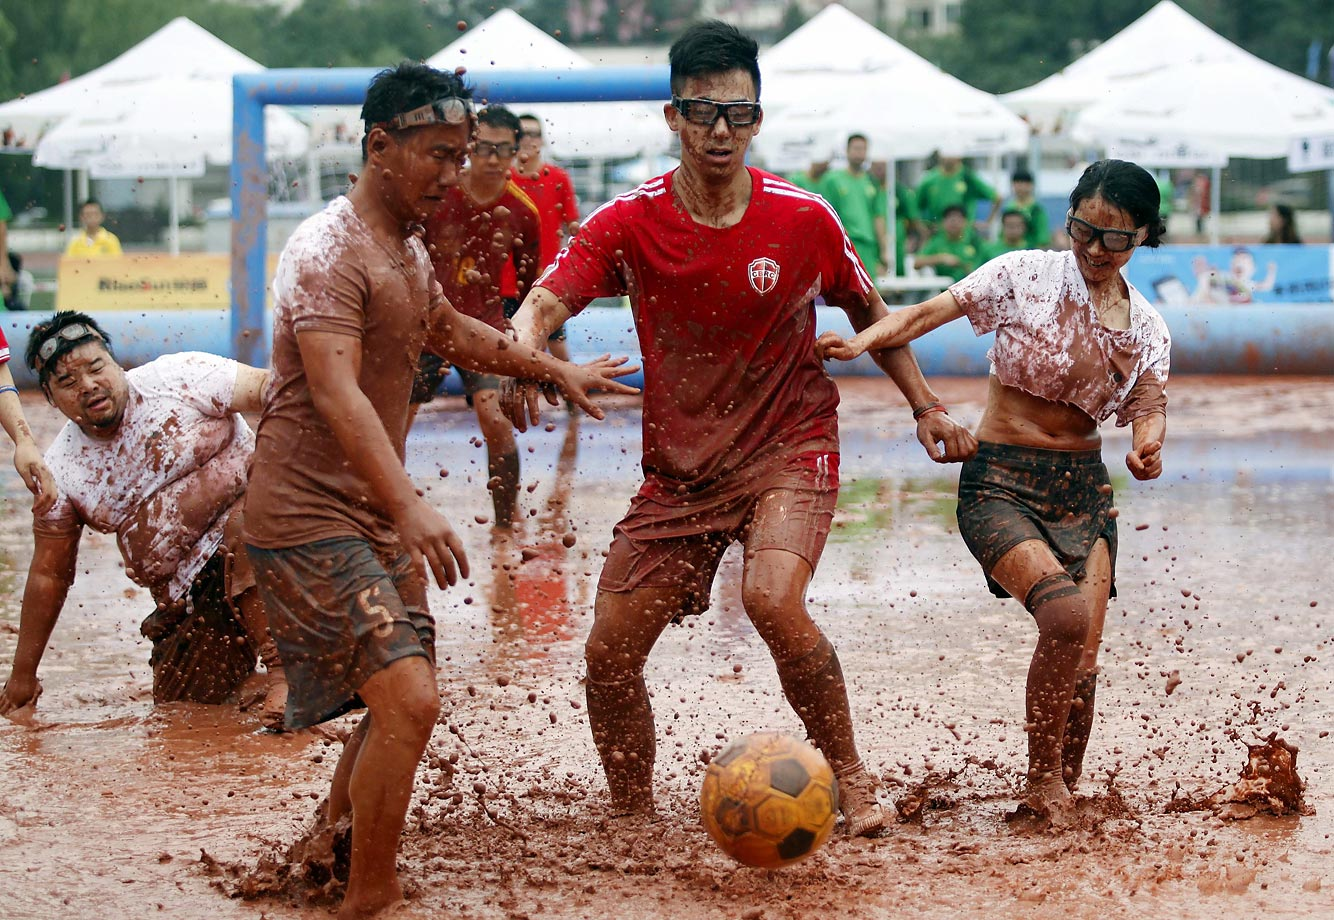 The 2015 Swamp Soccer China event in Beijing.